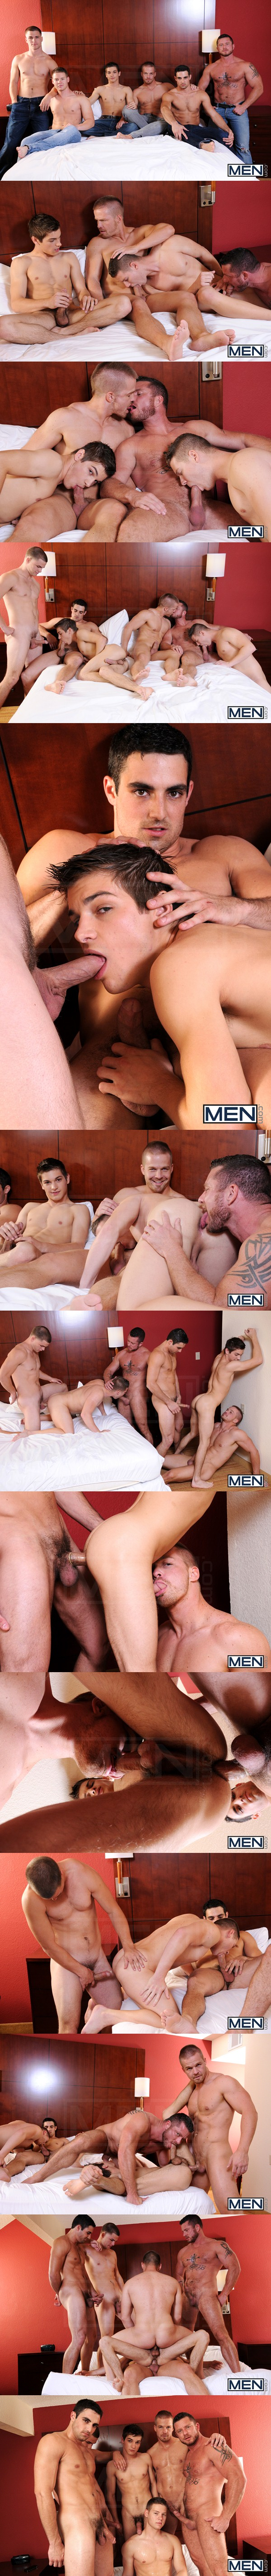 Johnny Rapid, Liam Magnuson, Jimmy Johnson, Charlie Harding, Jack King & Riley Banks Hot gangbang orgy in Turn Me Into A Whore 3 at Jizzorgy 01